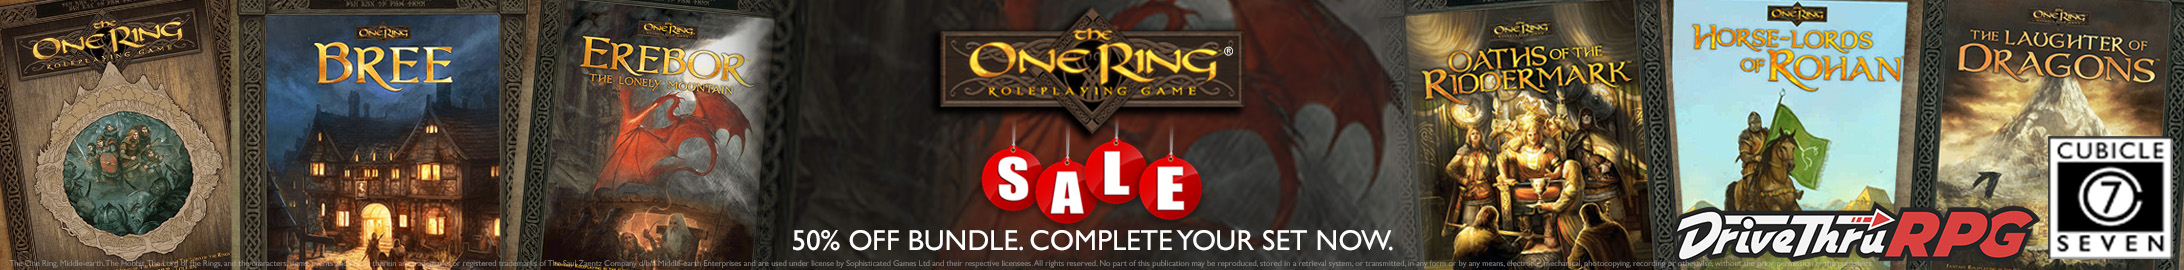 Complete your collection: The One Ring Bundle - 50% off @ DriveThruRPG.com